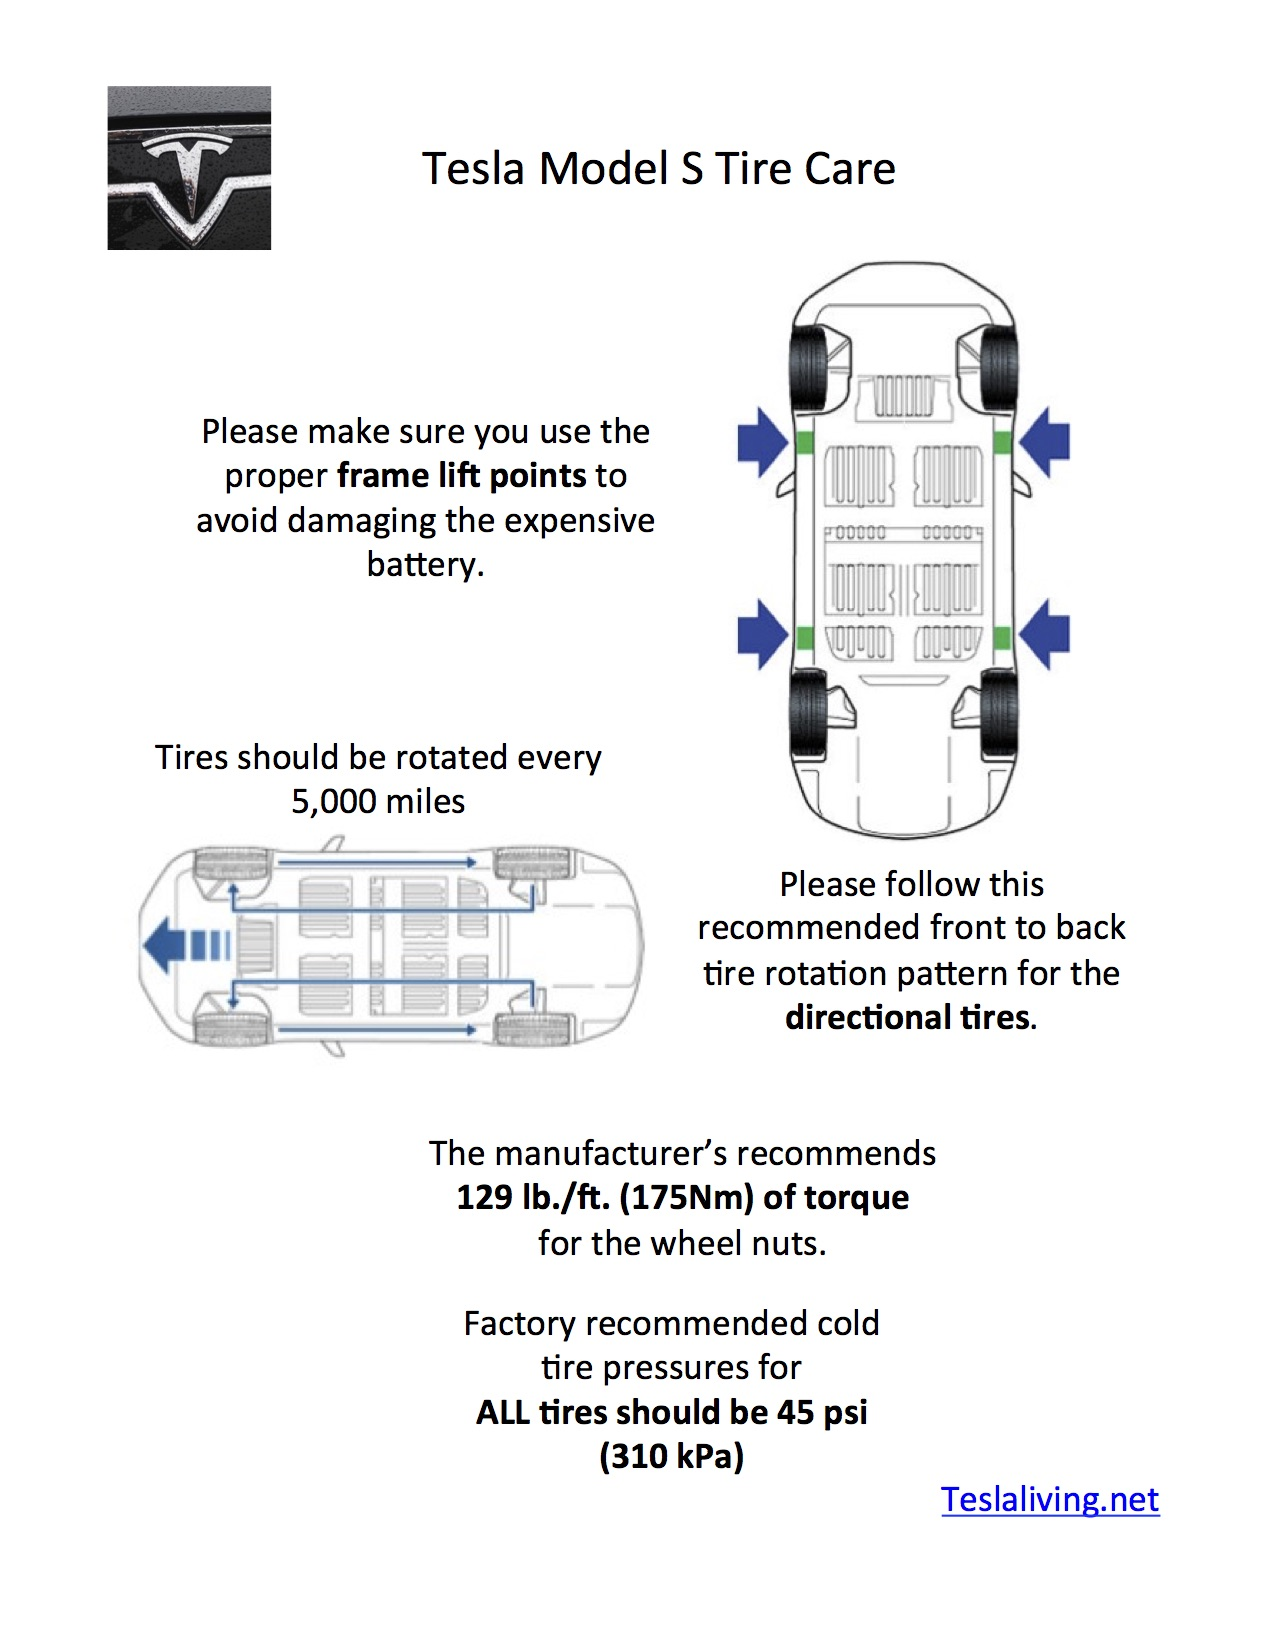 Tesla Model S Tire Cheat Sheet